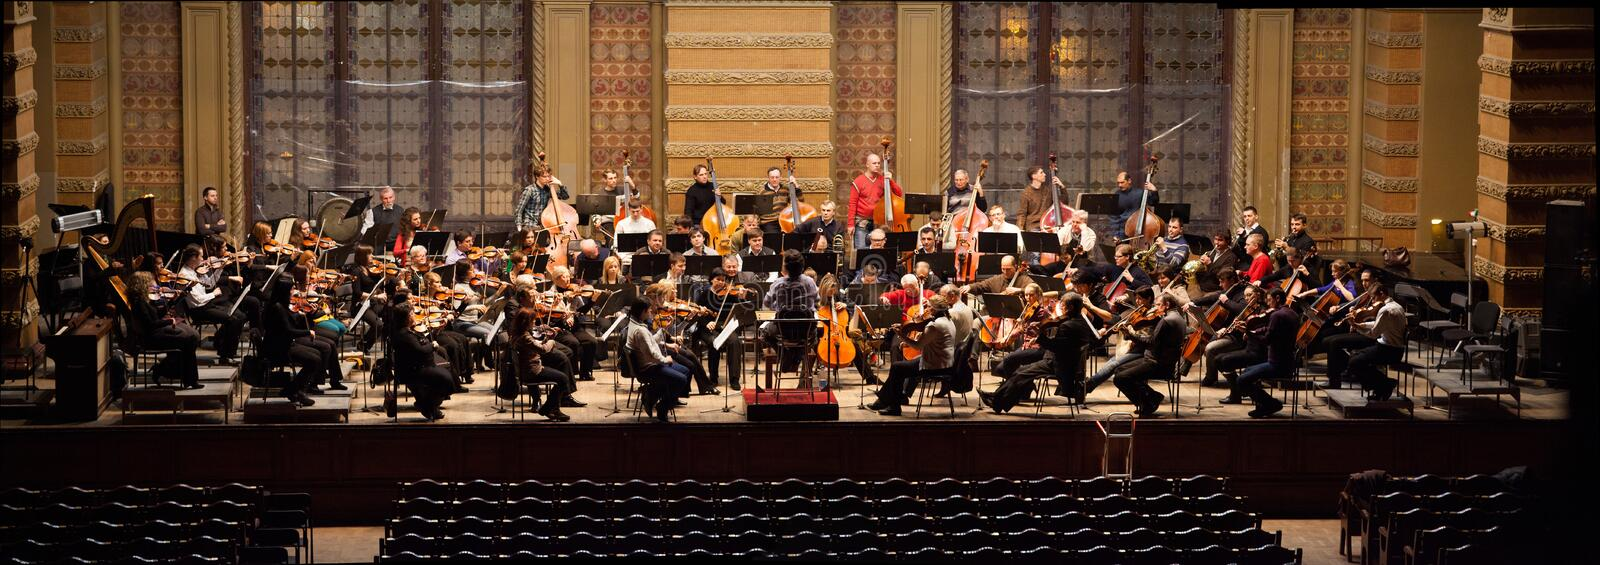 Symphony Orchestra Rehearsal Panorama Editorial Photography